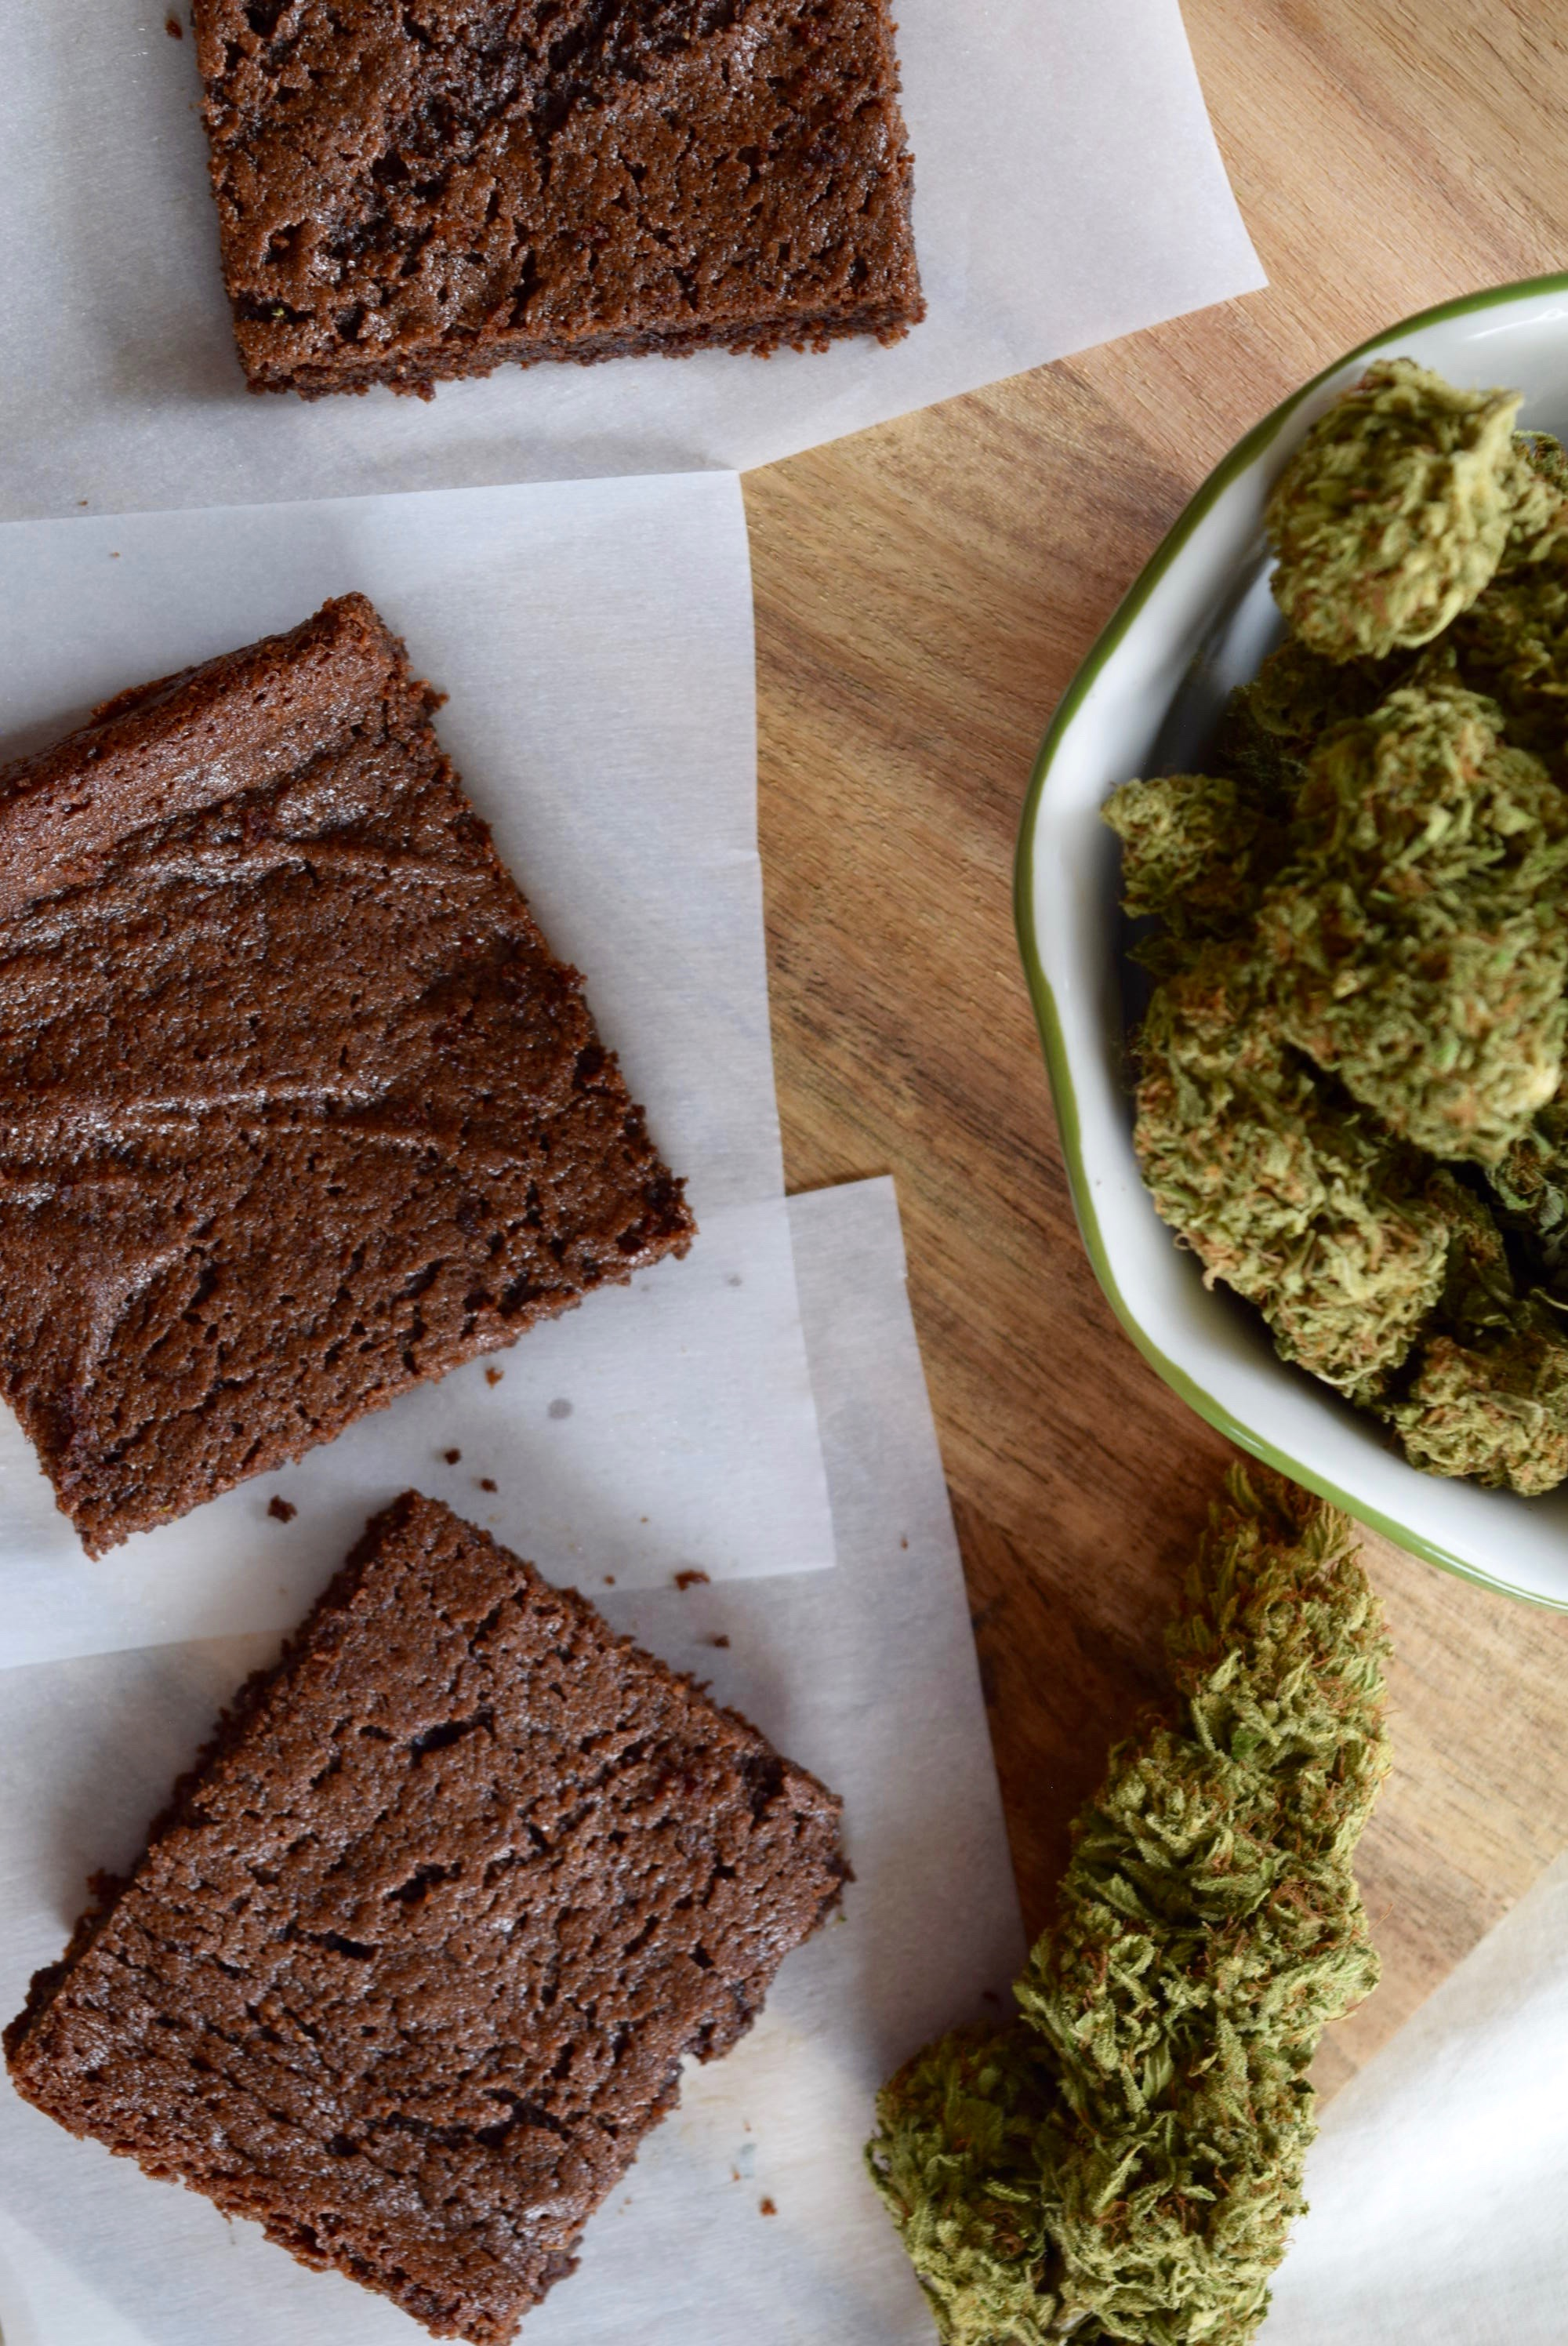 The World's Best (and healthiest!) Paleo Pot Brownies | Wake & Bake